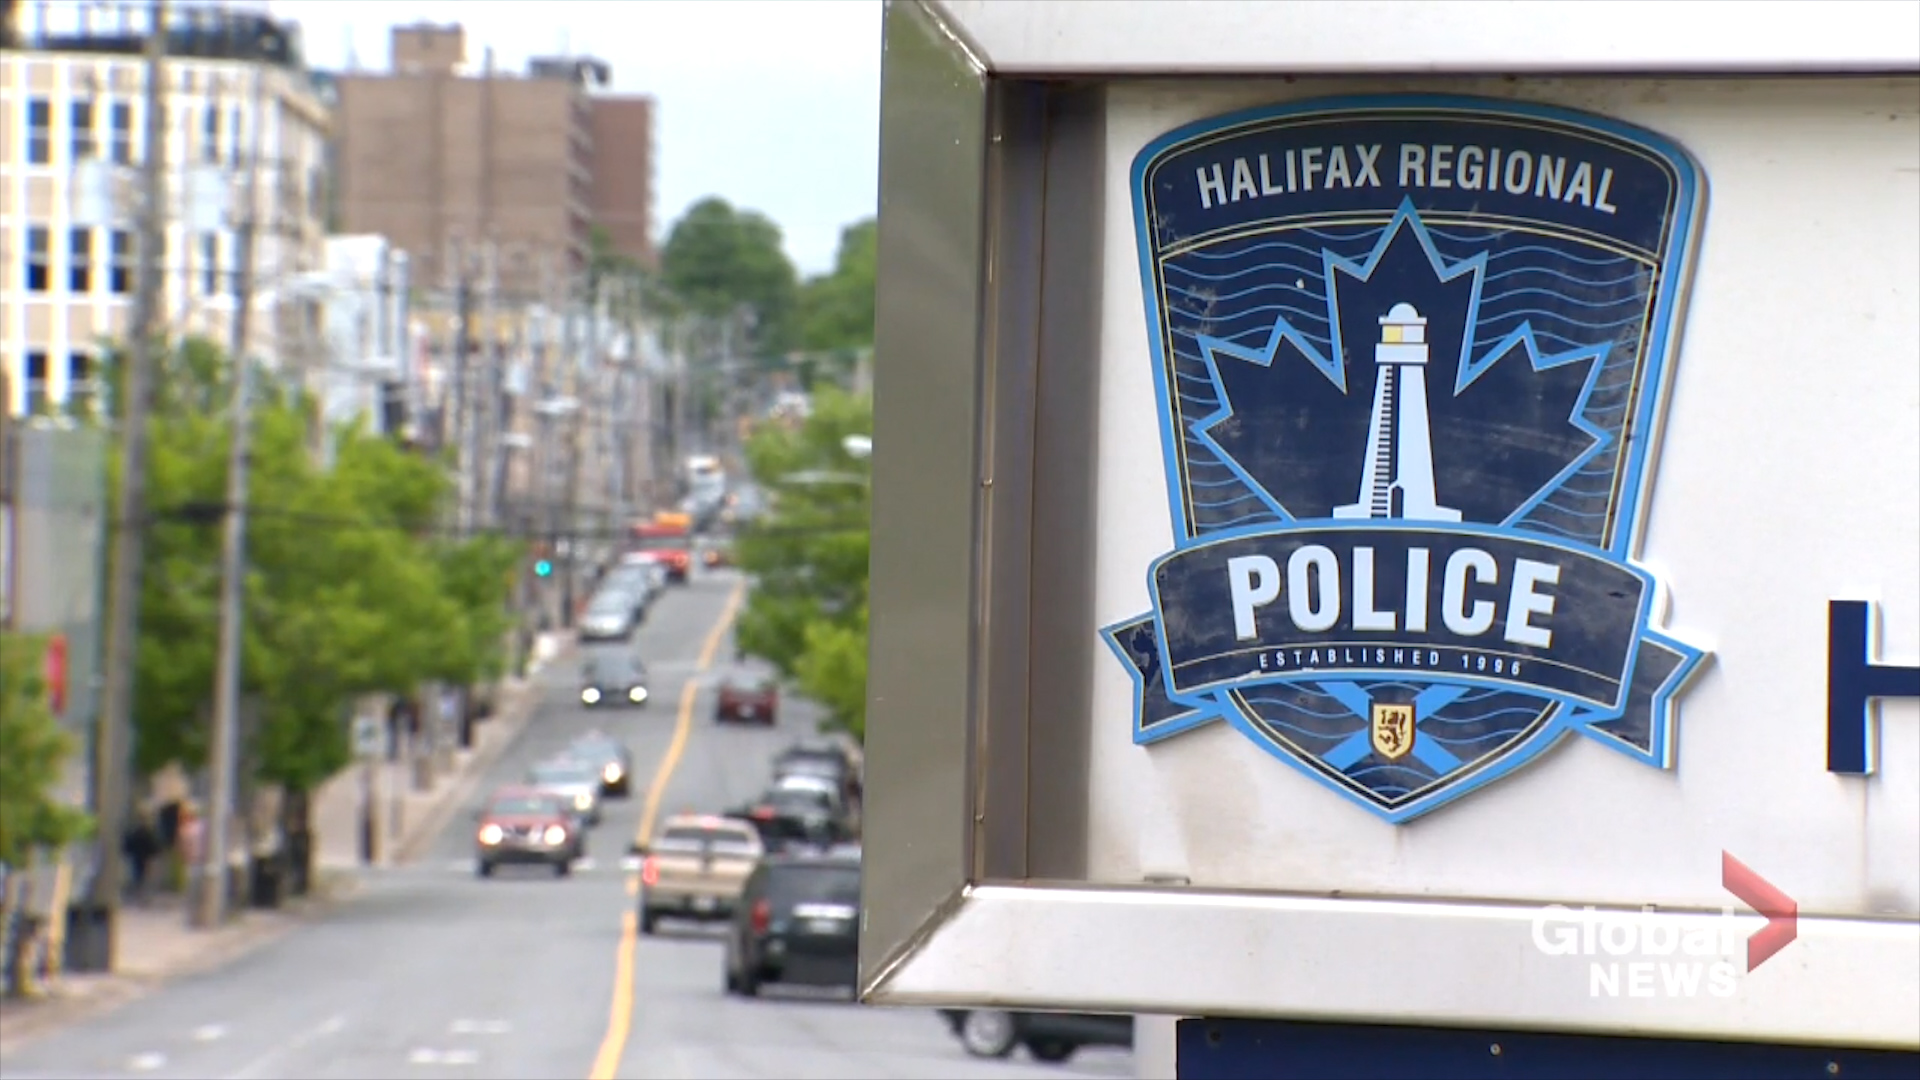 Halifax Regional Police offers no longer allowed to take guns home